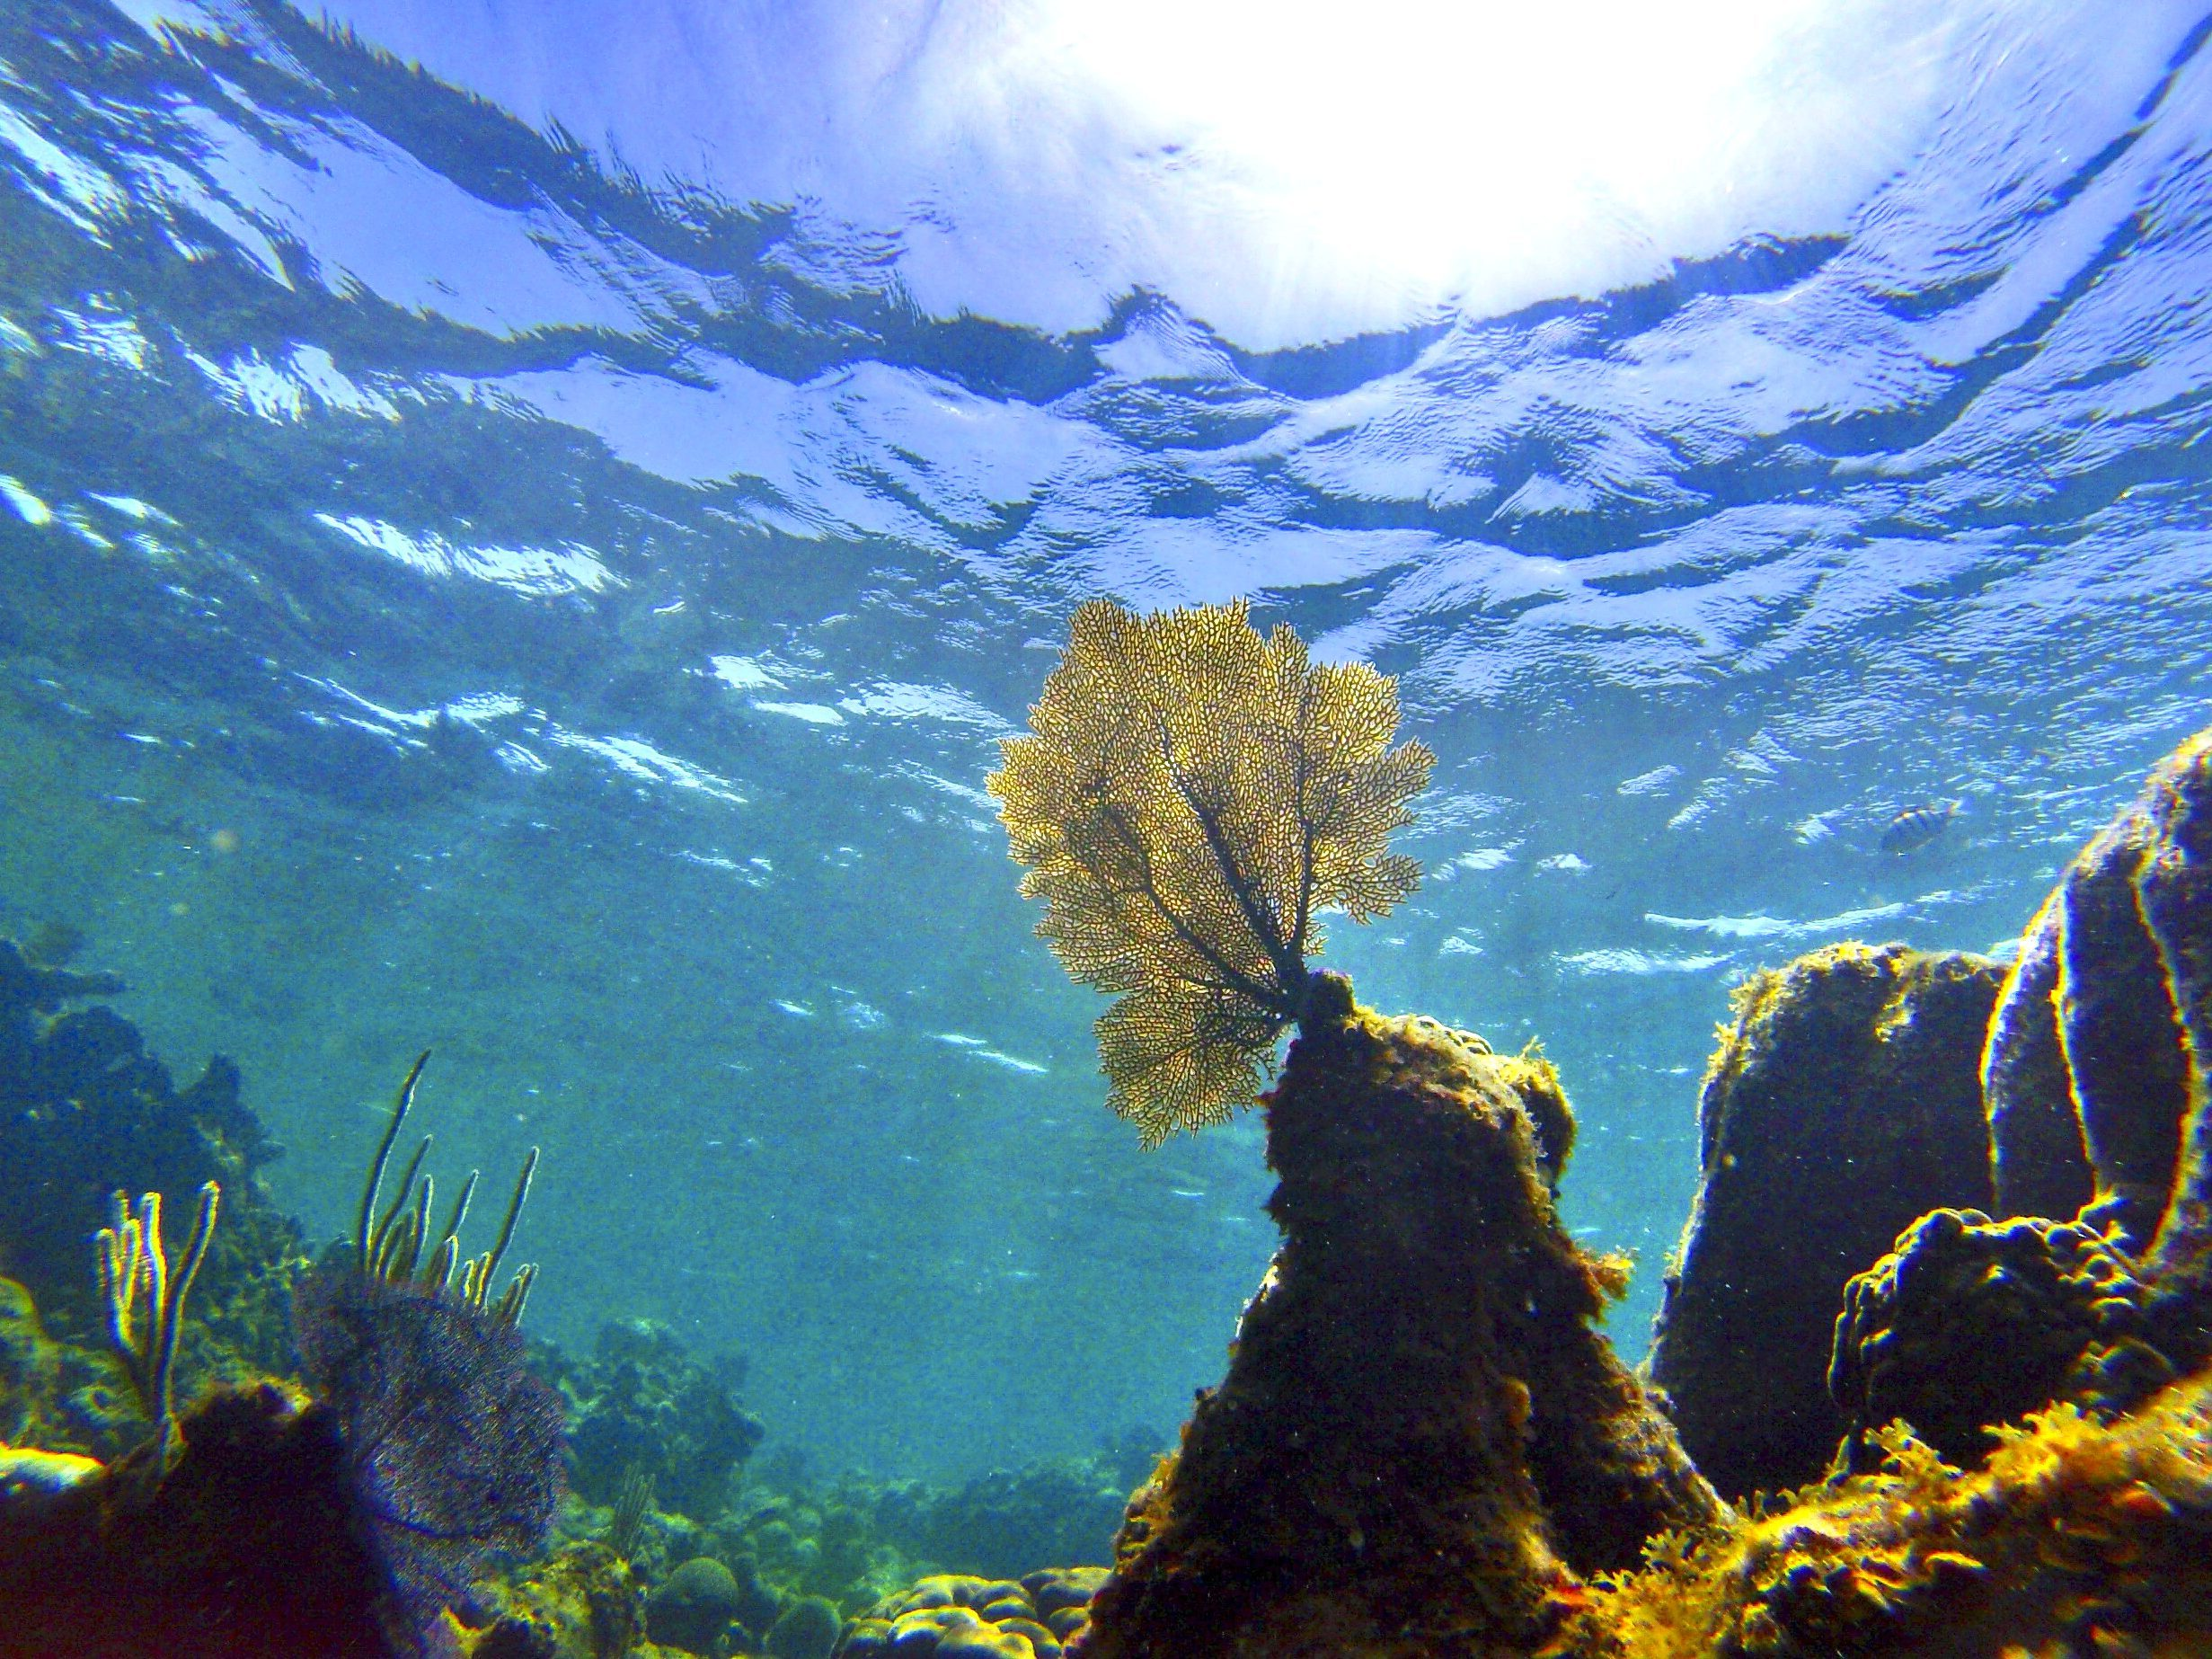 Federal Rules Could Protect Coral Reefs in Gulf of Mexico